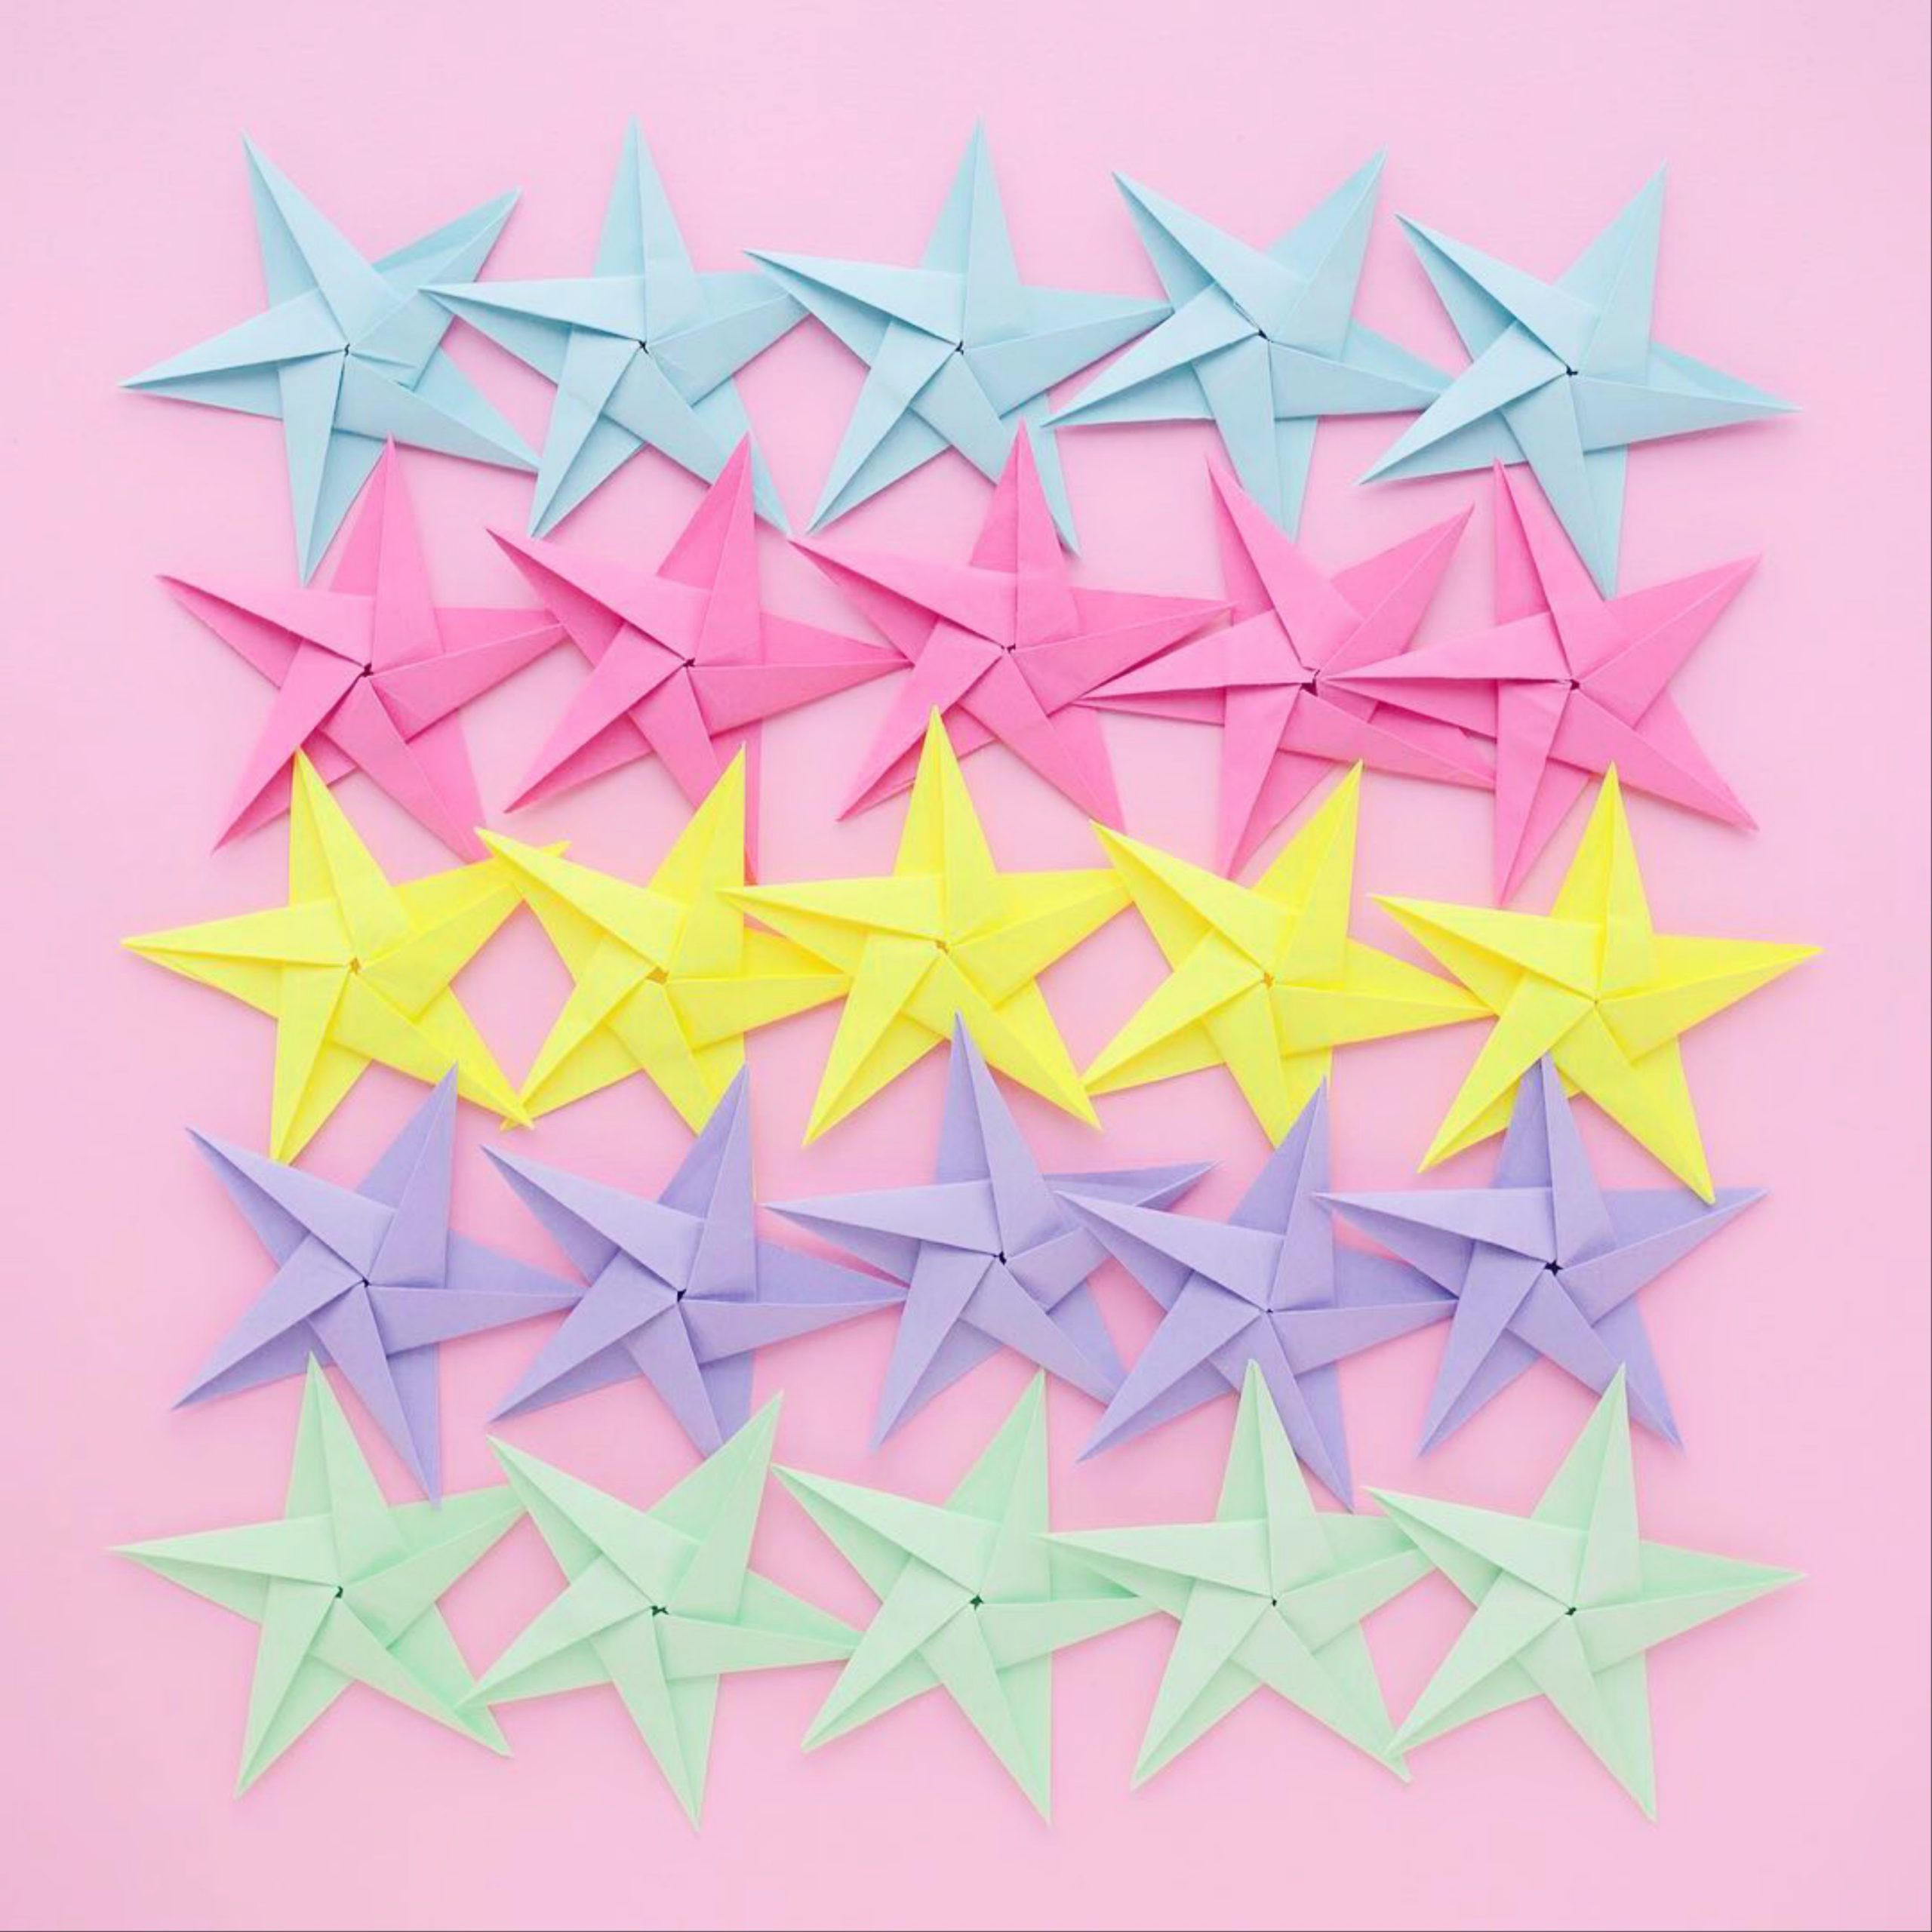 Star shapes made with colorful paper